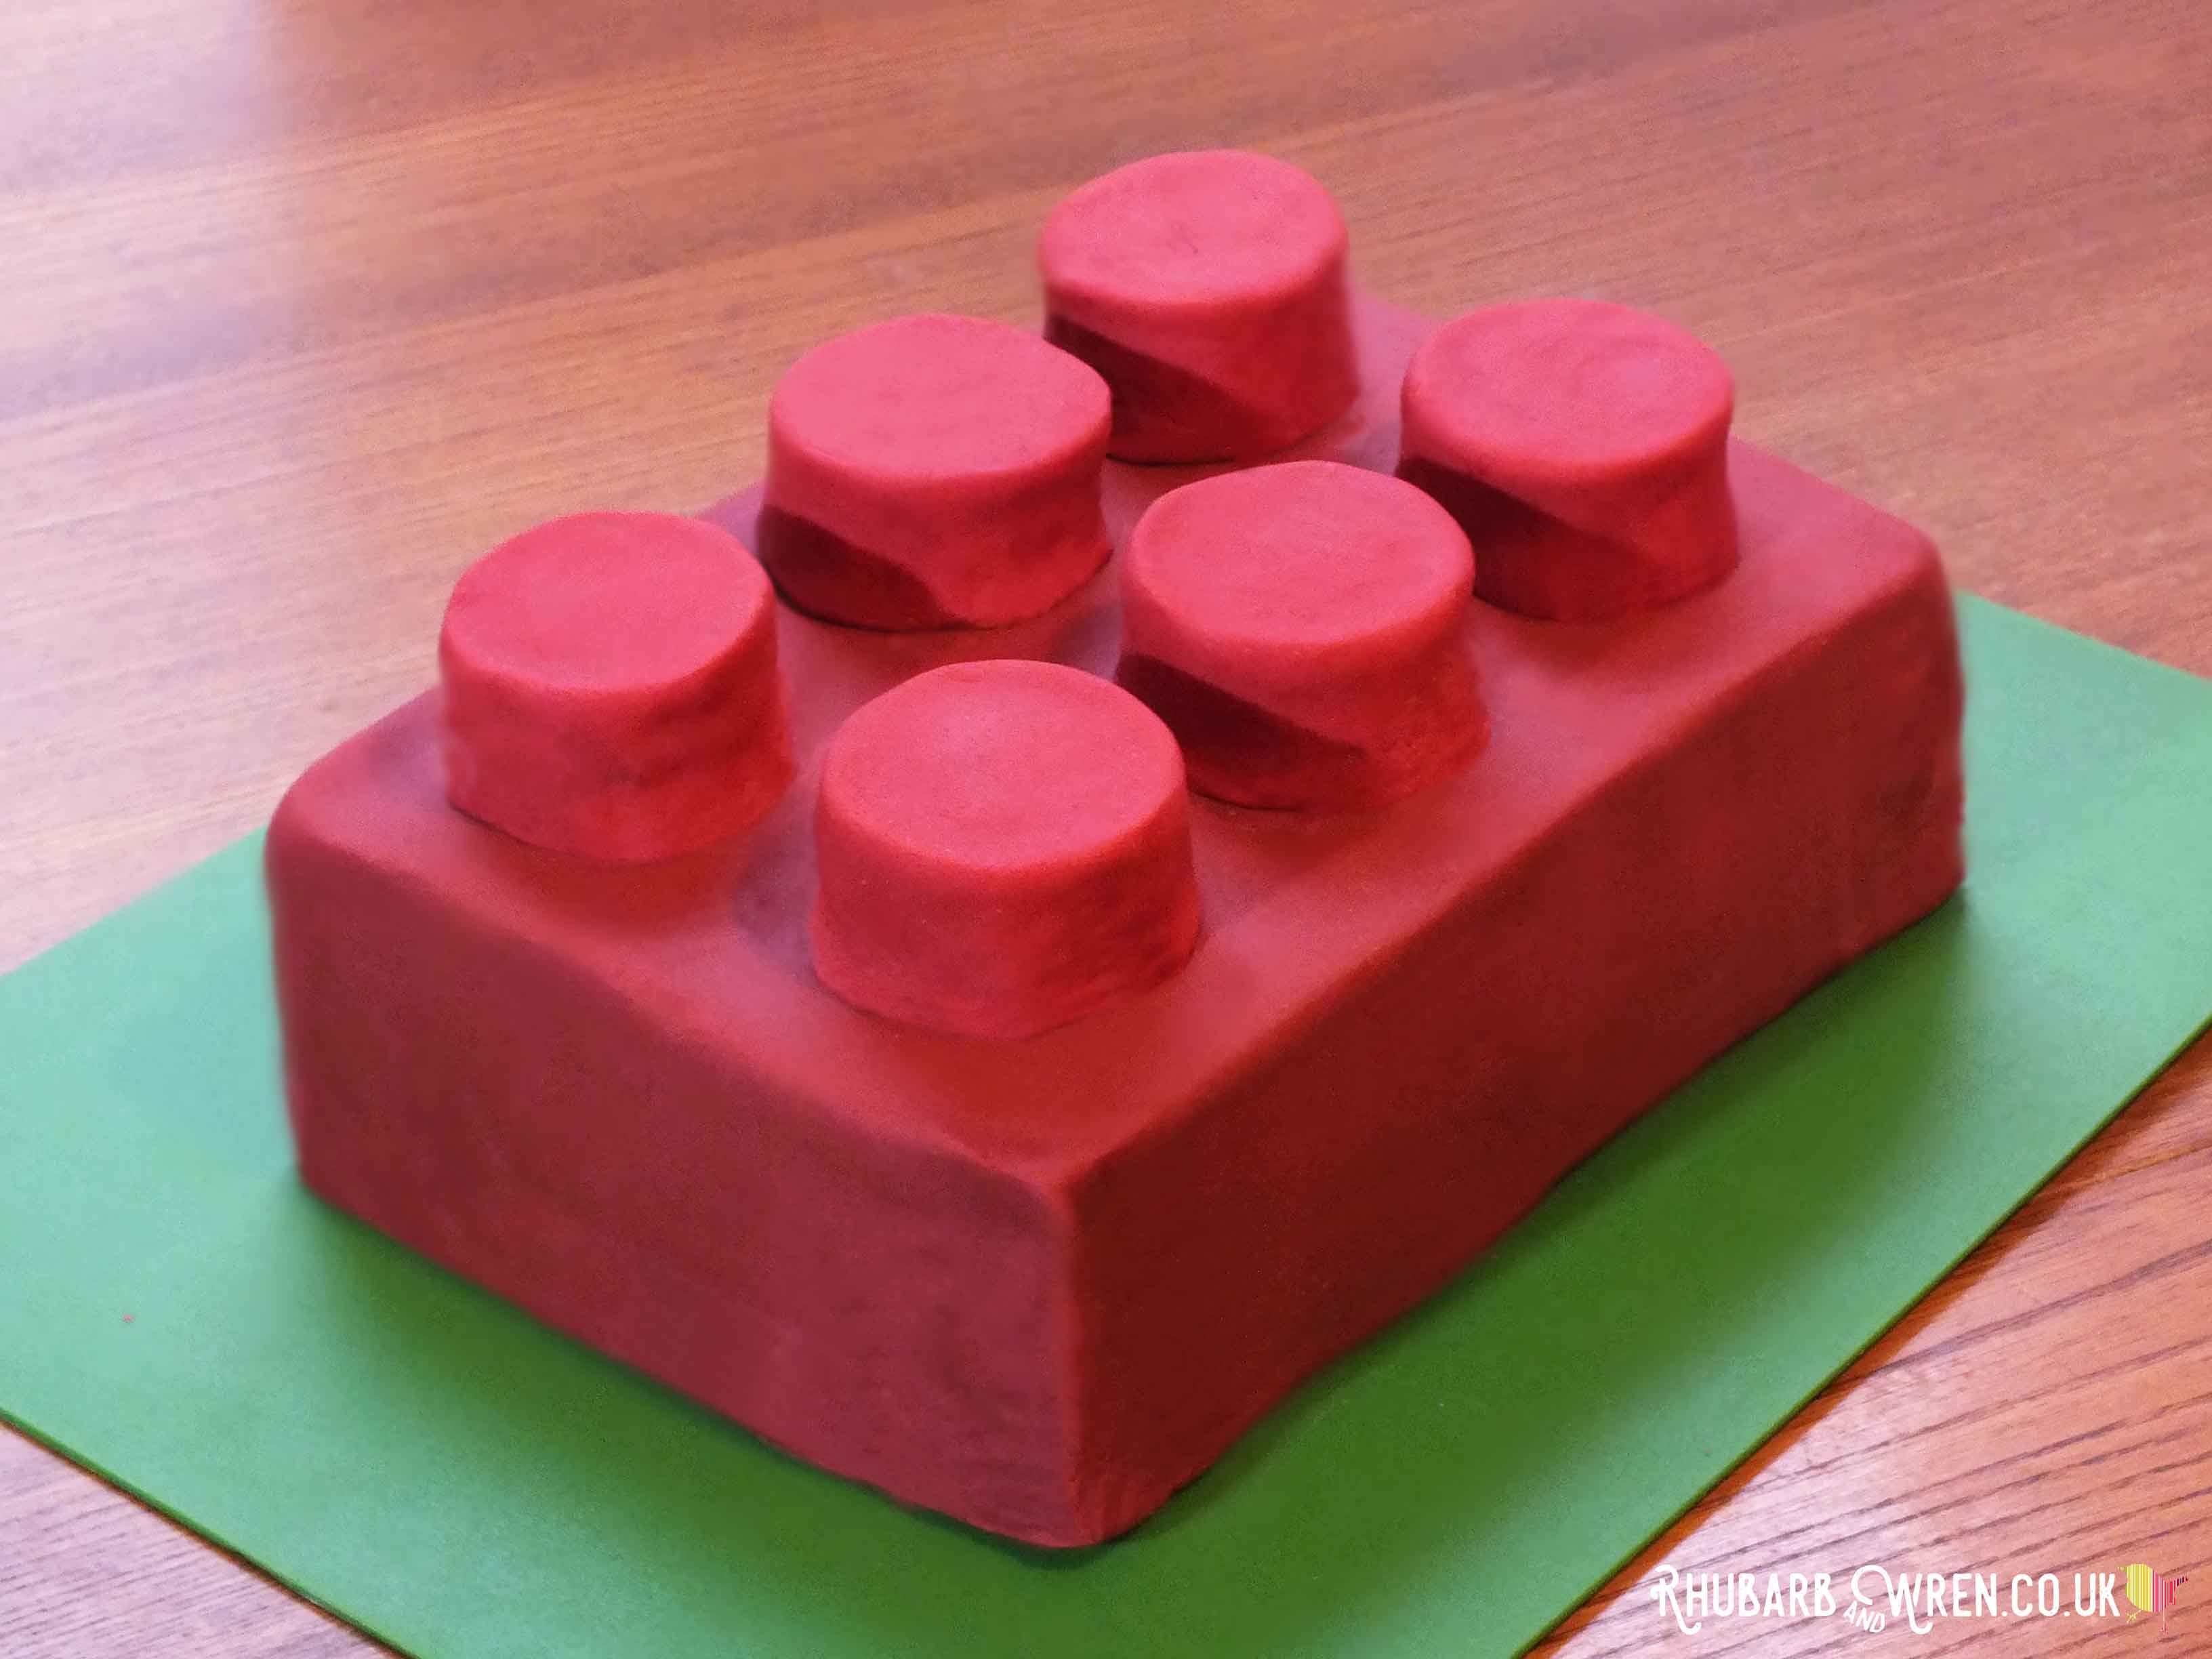 Giant Lego brick cake covered with red fondant icing.